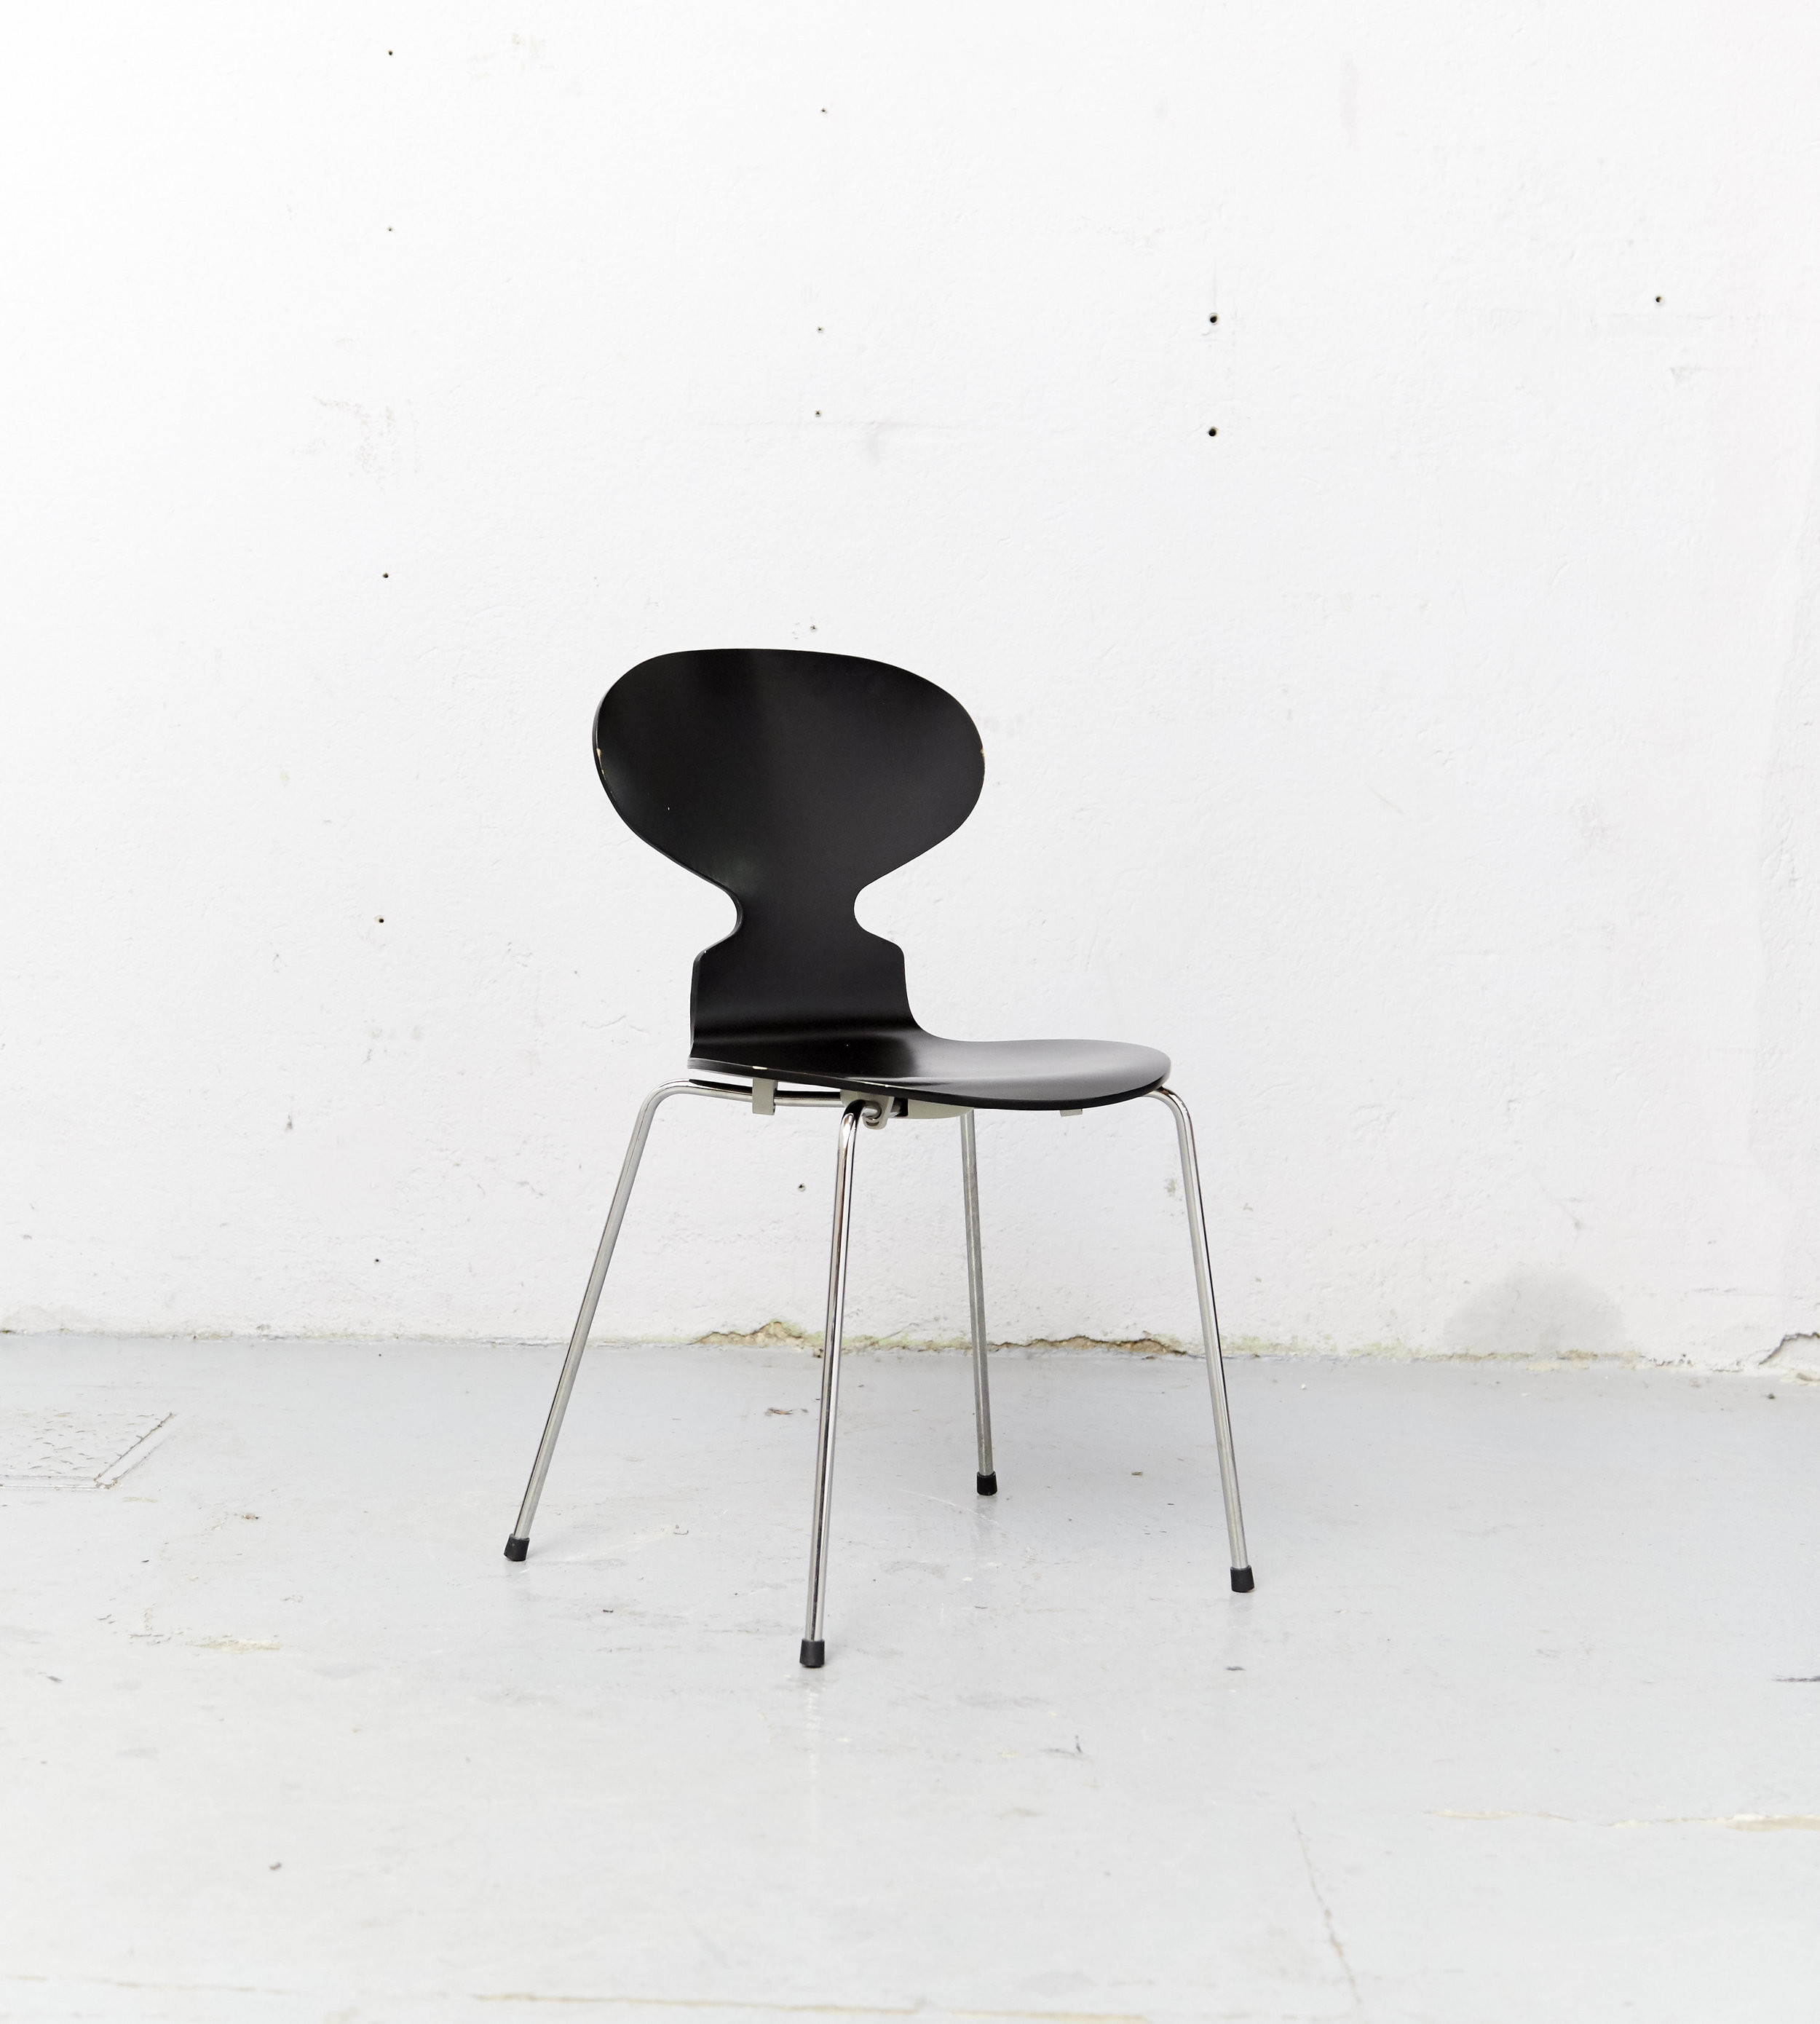 Arne Jacobsen Ameise Sold Arne Jacobsen 3101 Ant Chair